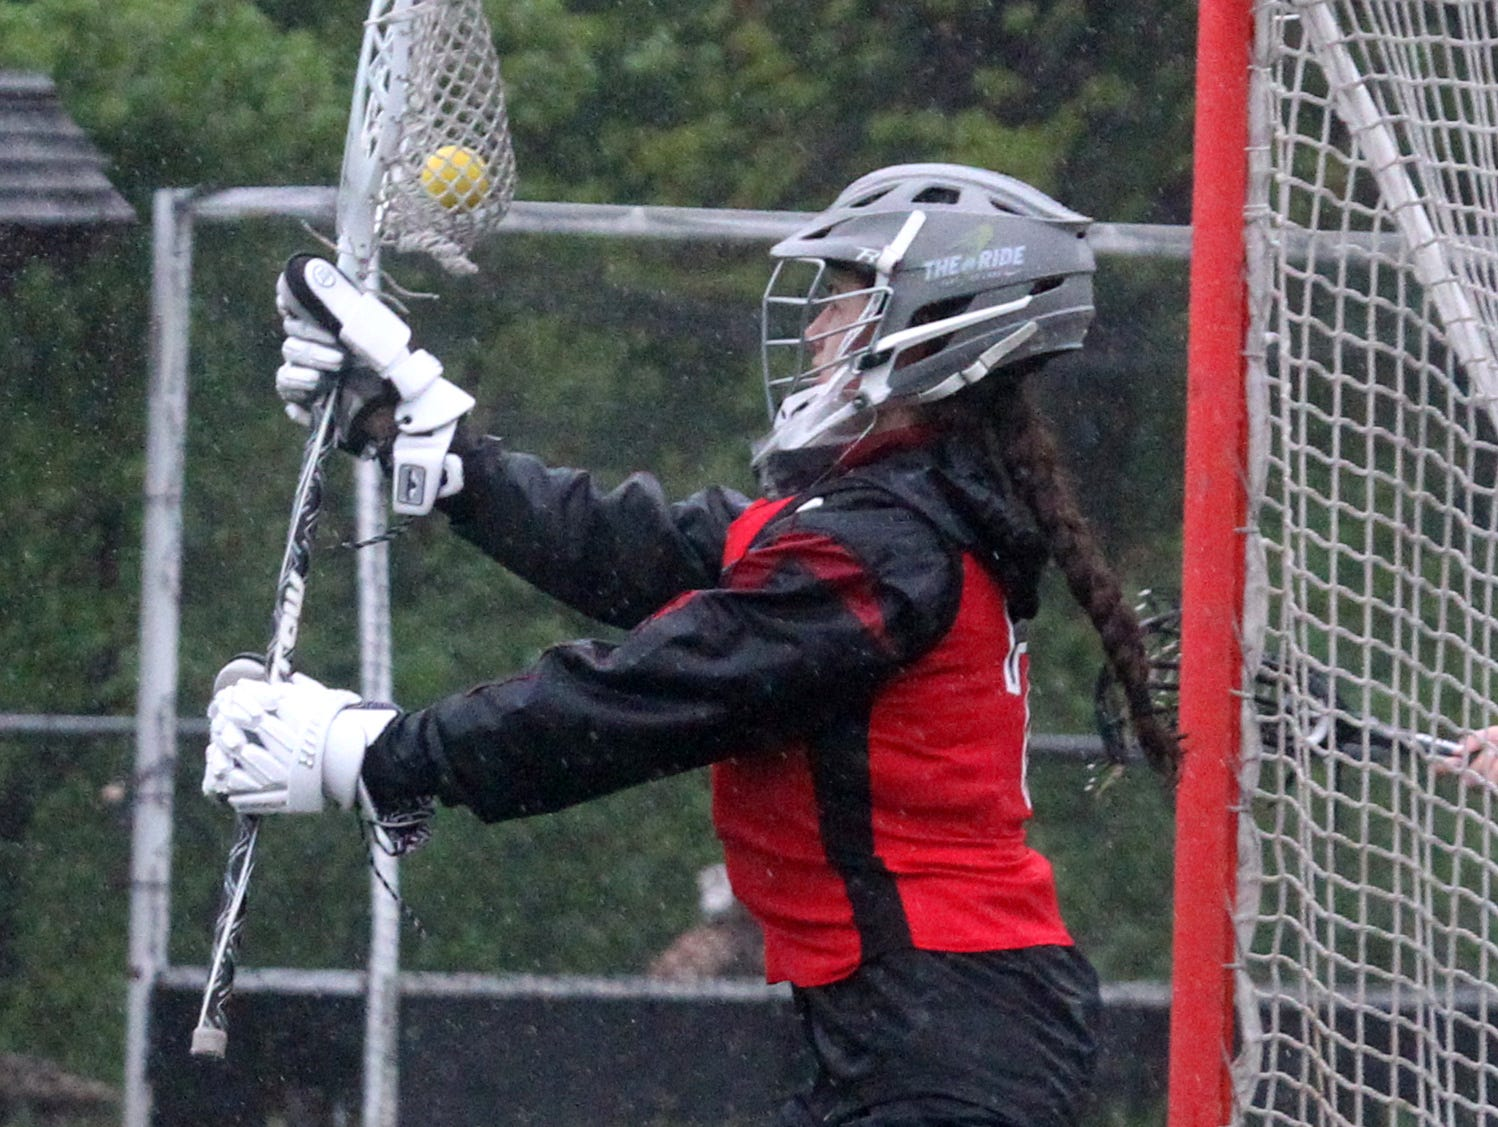 Rye's Michella Dinardo makes a save during Rye's10-9 win at Scarsdale May 13, 2016.